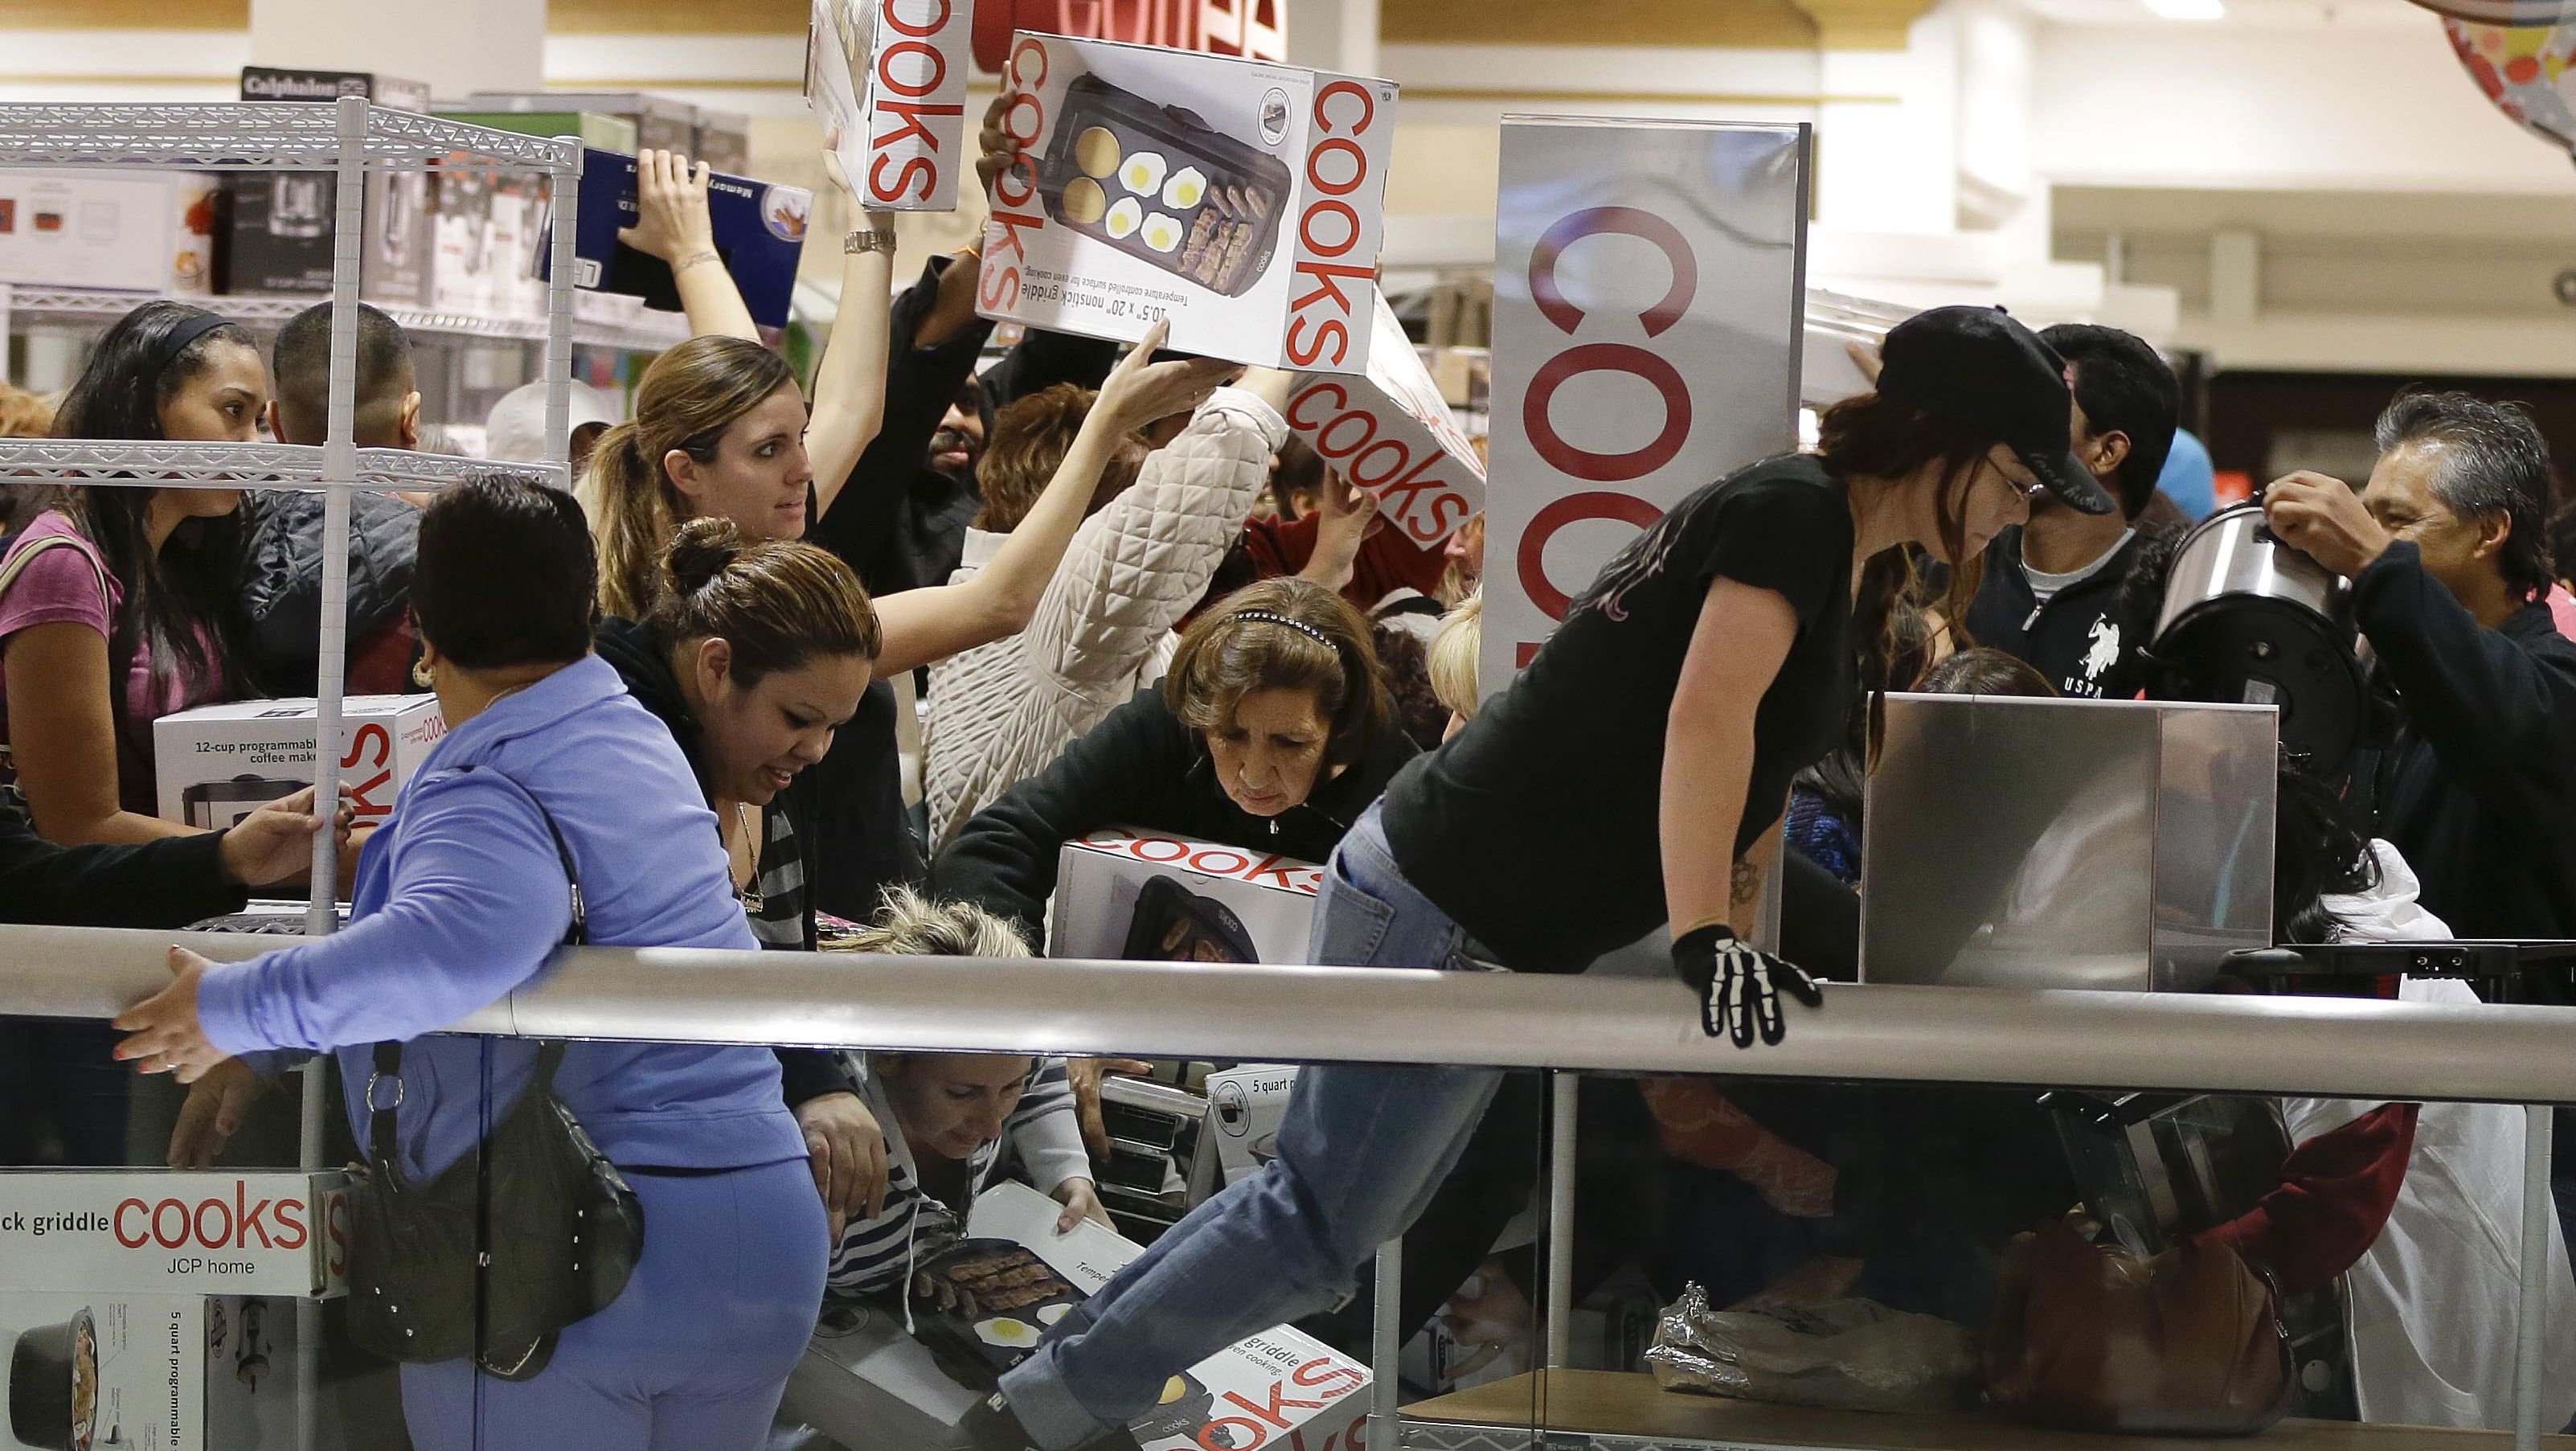 Shoppers rush to grab electric griddles and slow cookers on sale for $8 shortly after the doors opened at a J.C. Penney story, Friday, Nov. 23, 2012, in Las Vegas.